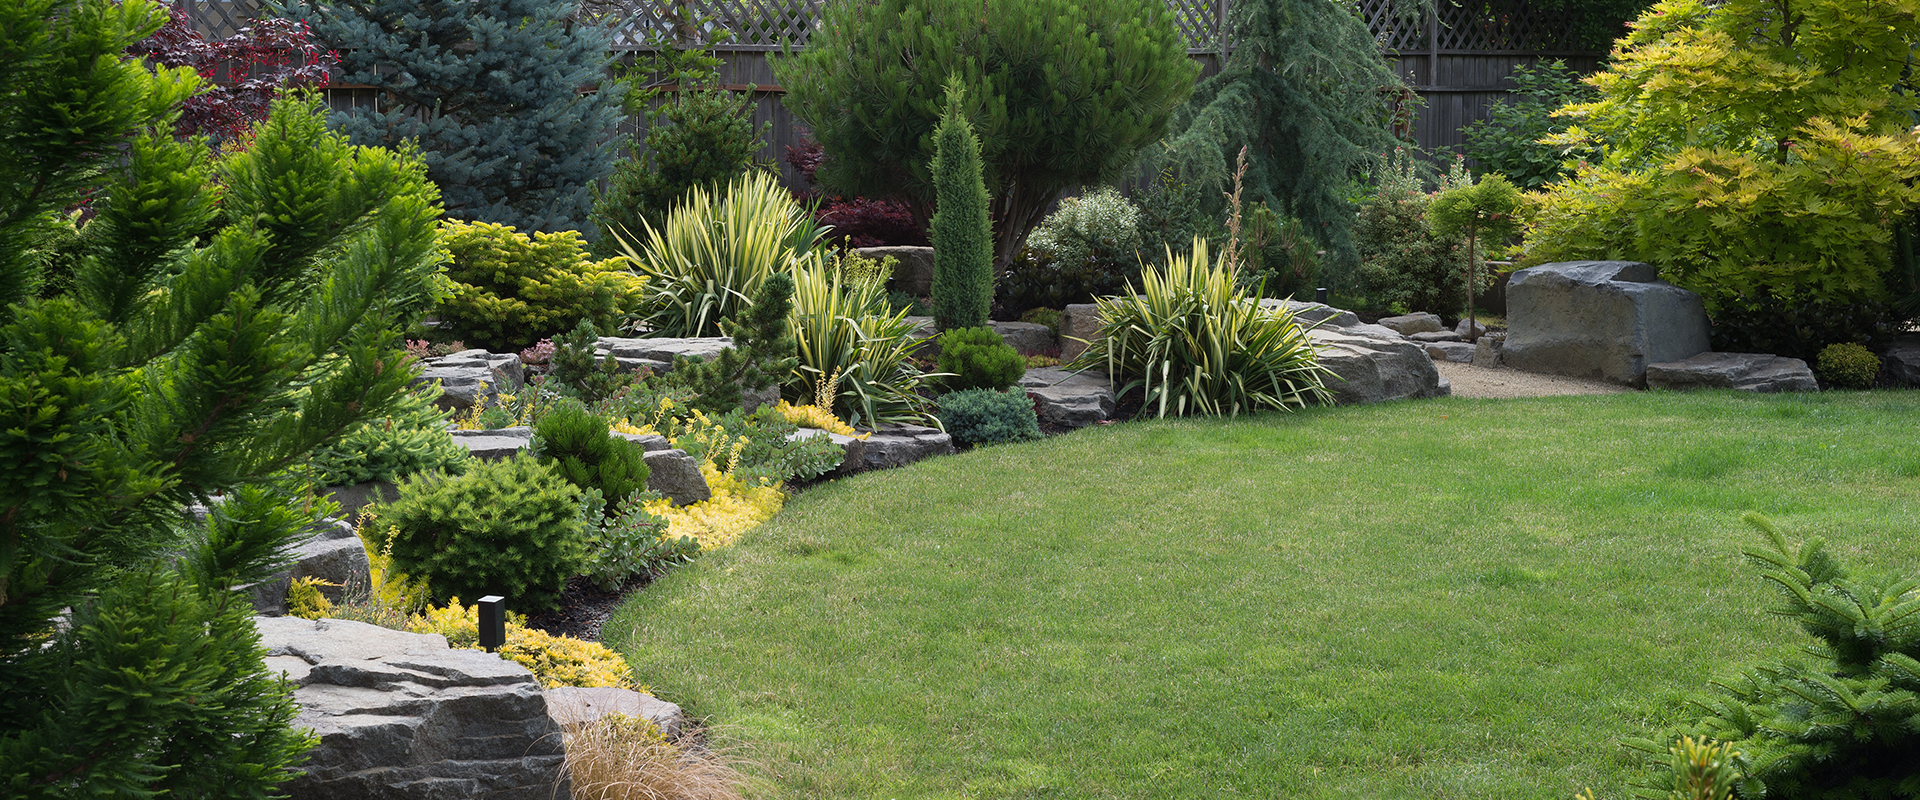 uv-landscaping-home-design-feature